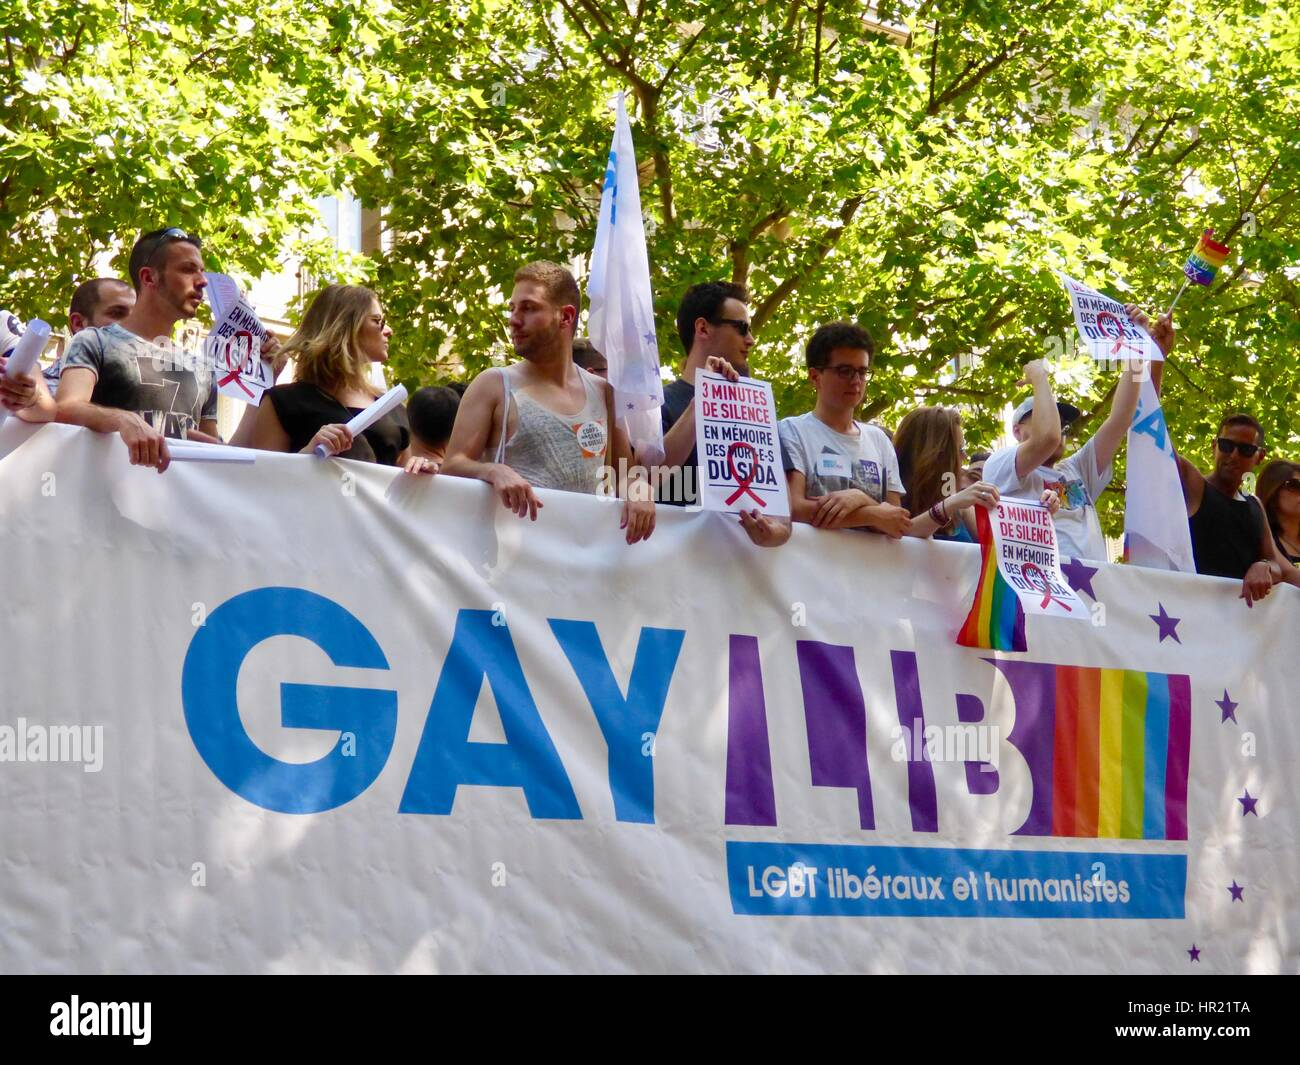 GAYLIB float, Paris Pride Parade 2015. Marche des Fiertés. Participants hold signs during moment of silence - Stock Image